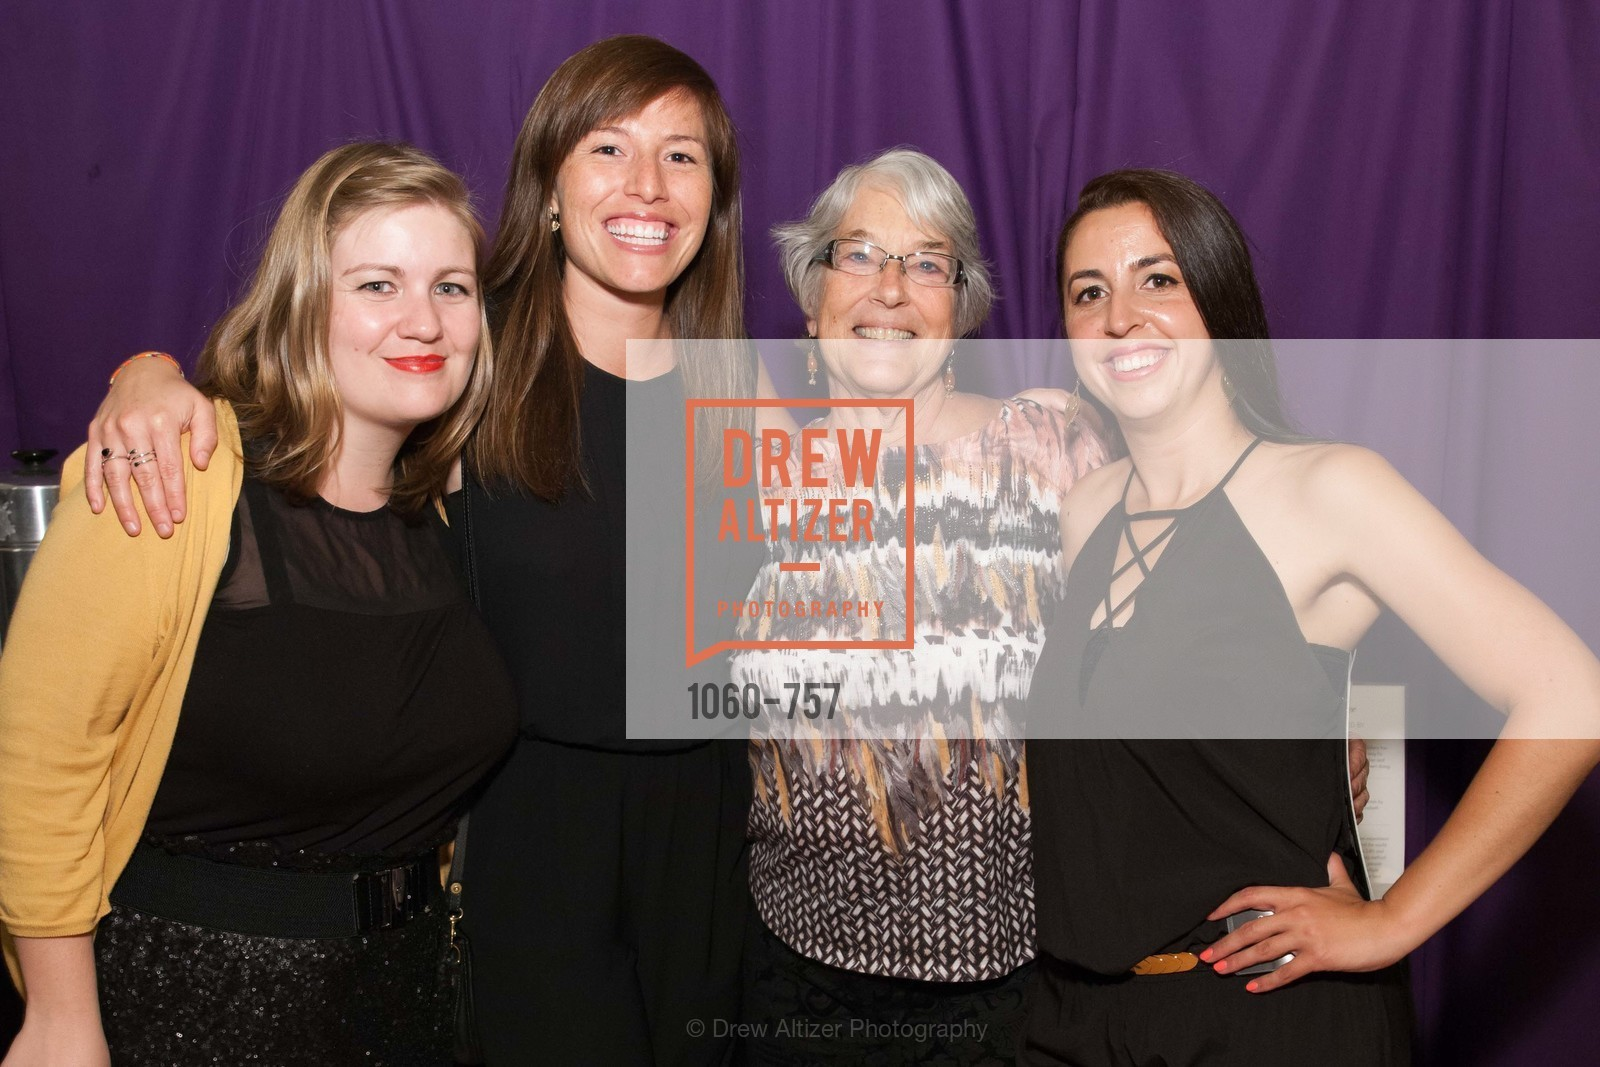 Lauren Via, Nancy Rapir, Jen Greco, HOMELESS PRENATAL PROGRAM Our House, Our Mission Gala, US, May 30th, 2015,Drew Altizer, Drew Altizer Photography, full-service agency, private events, San Francisco photographer, photographer california